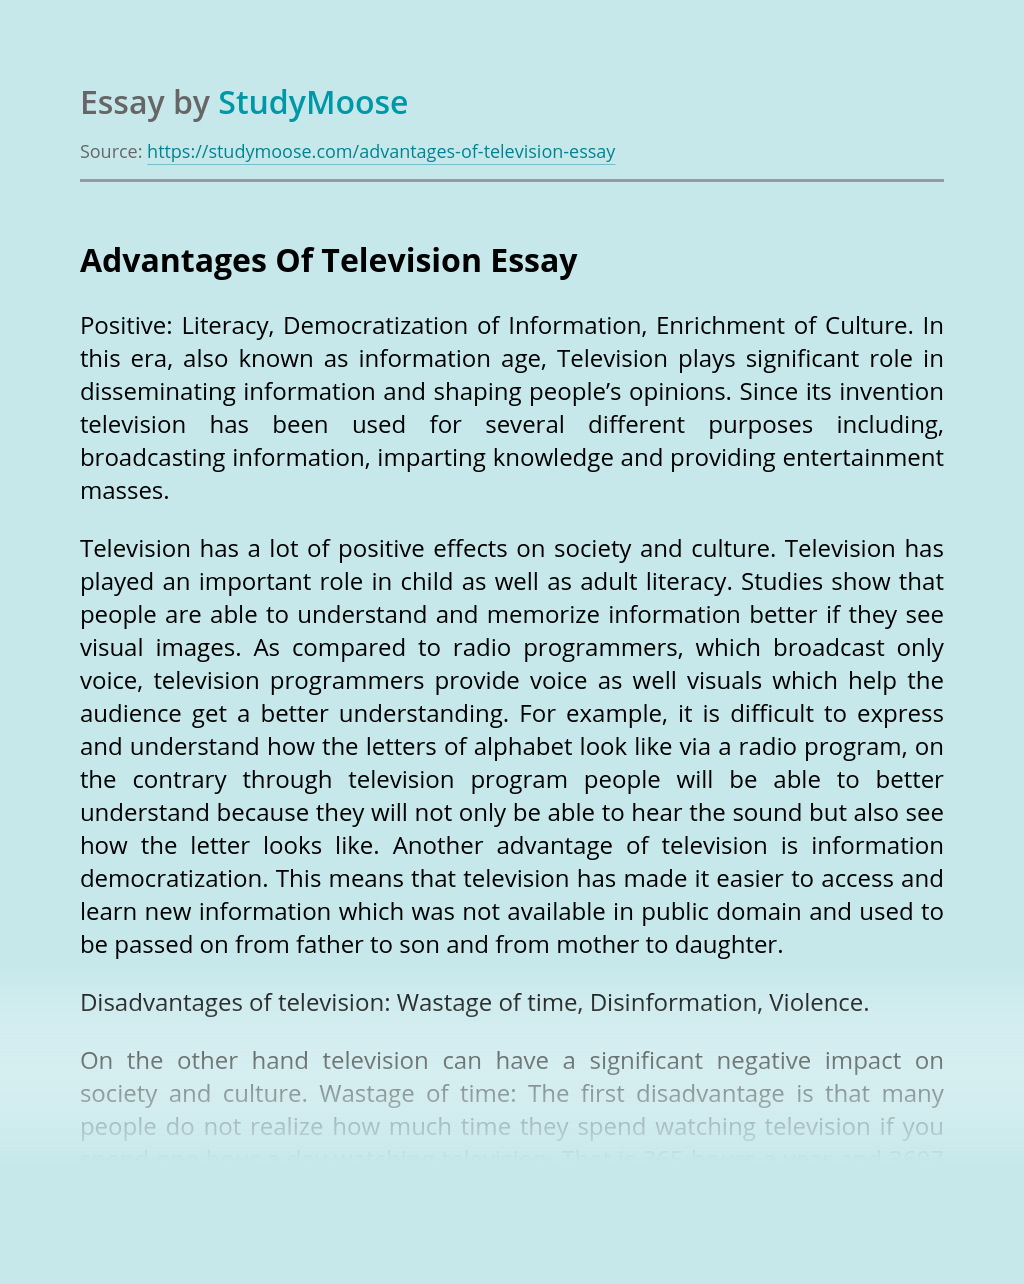 Advantages Of Television